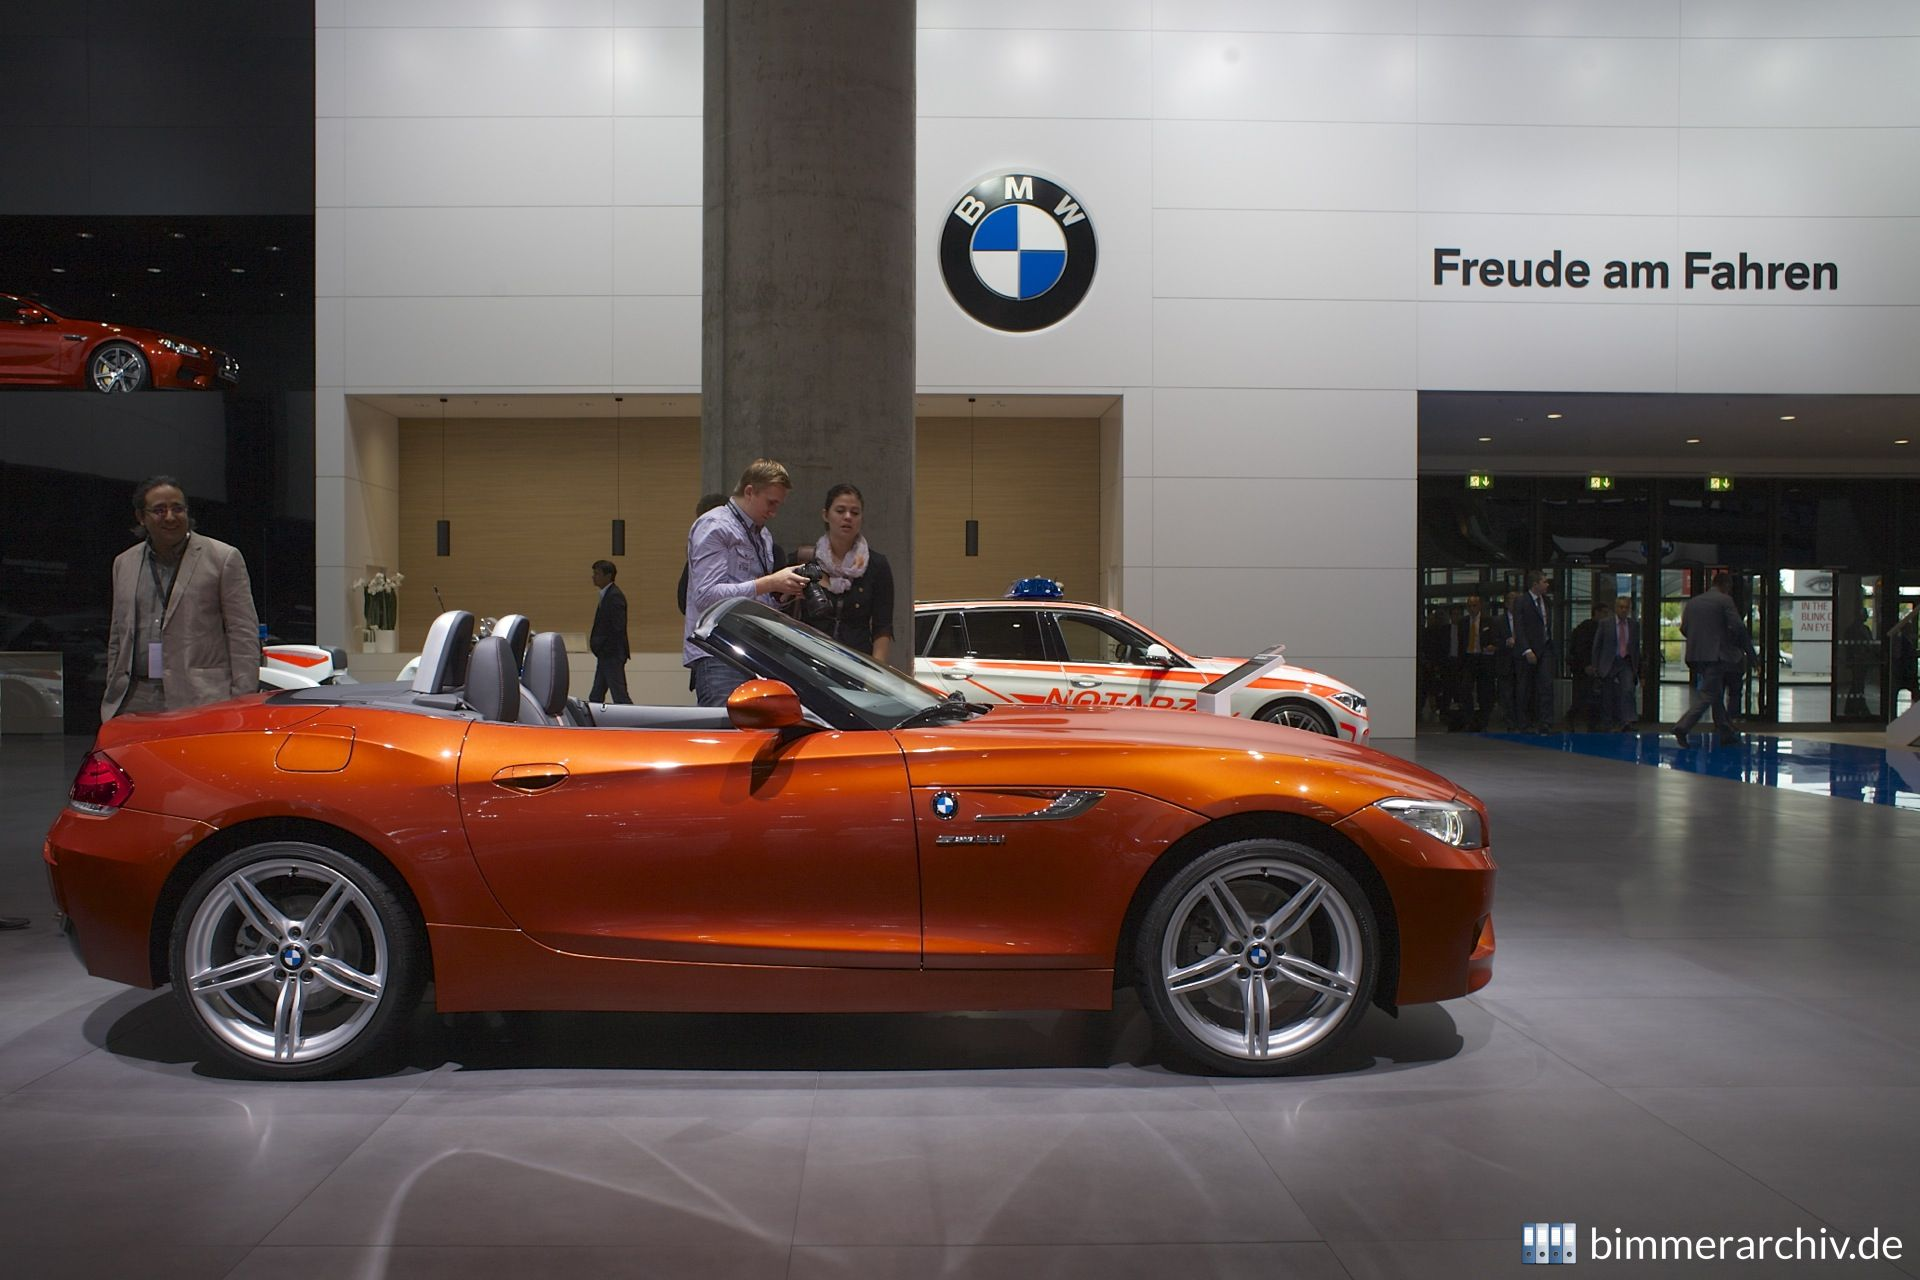 Bmw Model Archive 183 Bmw Z4 Sdrive 28i 183 Bmwarchive Org